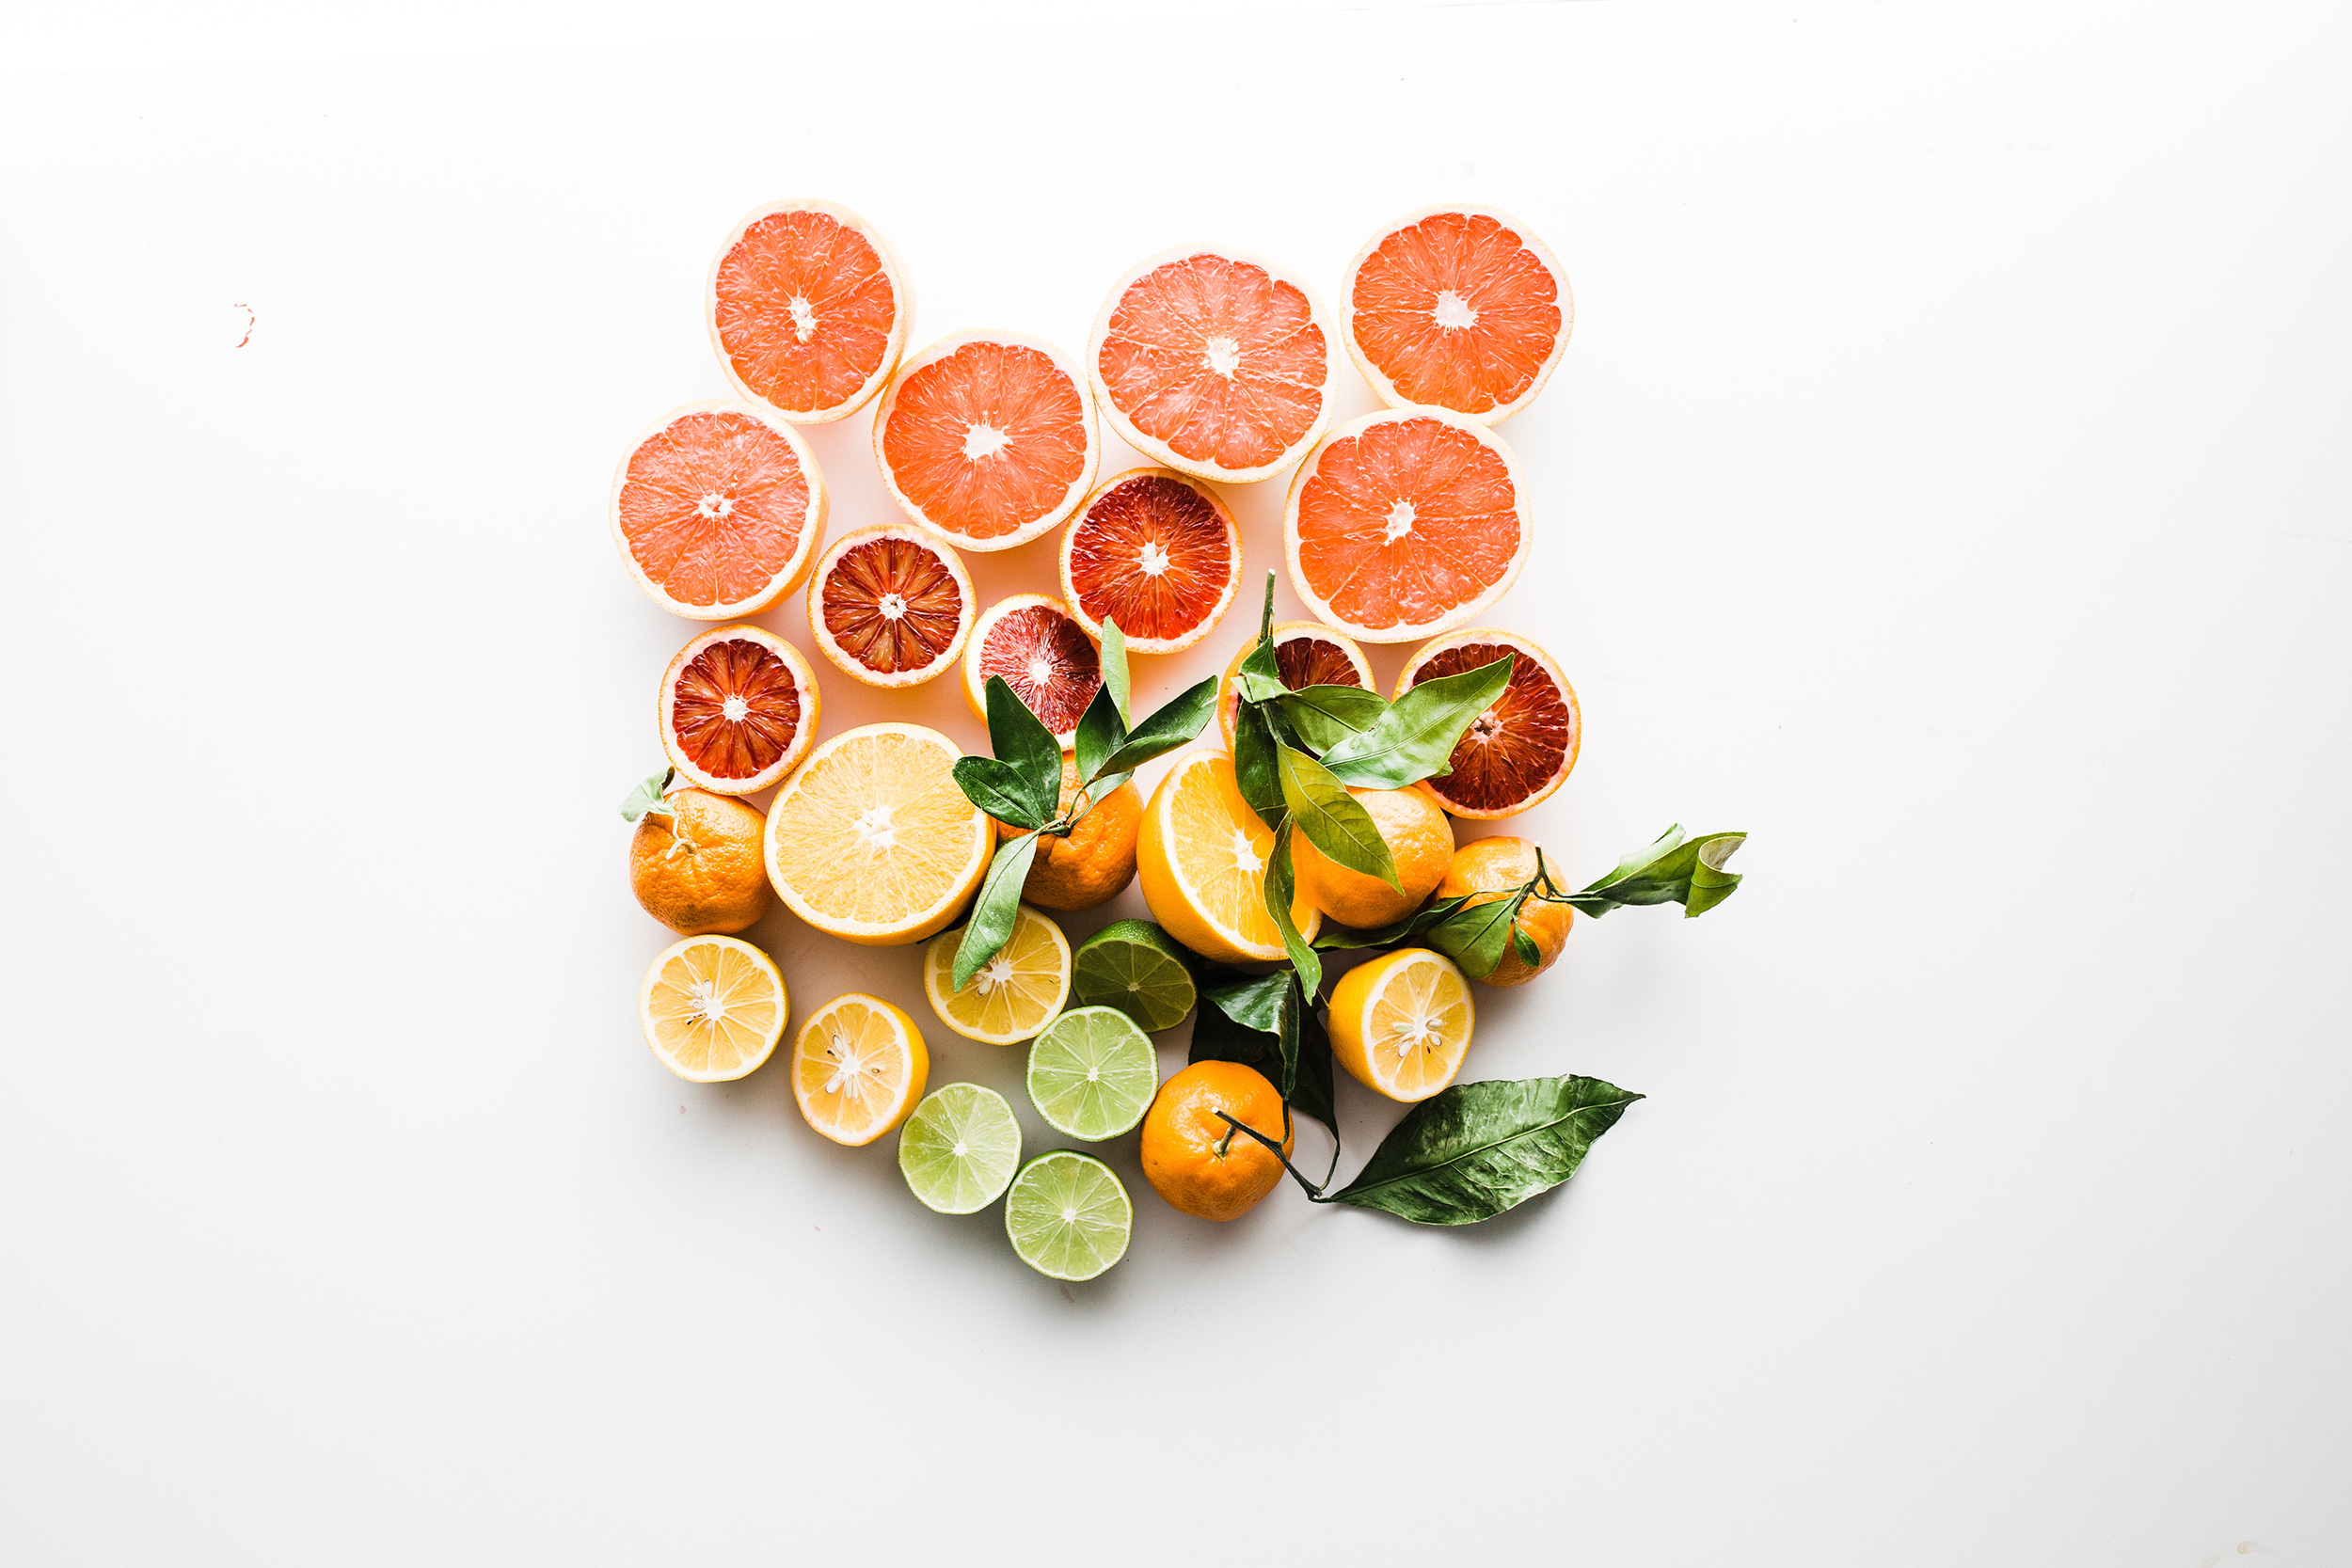 Citrus have a low glycemic index (GI)